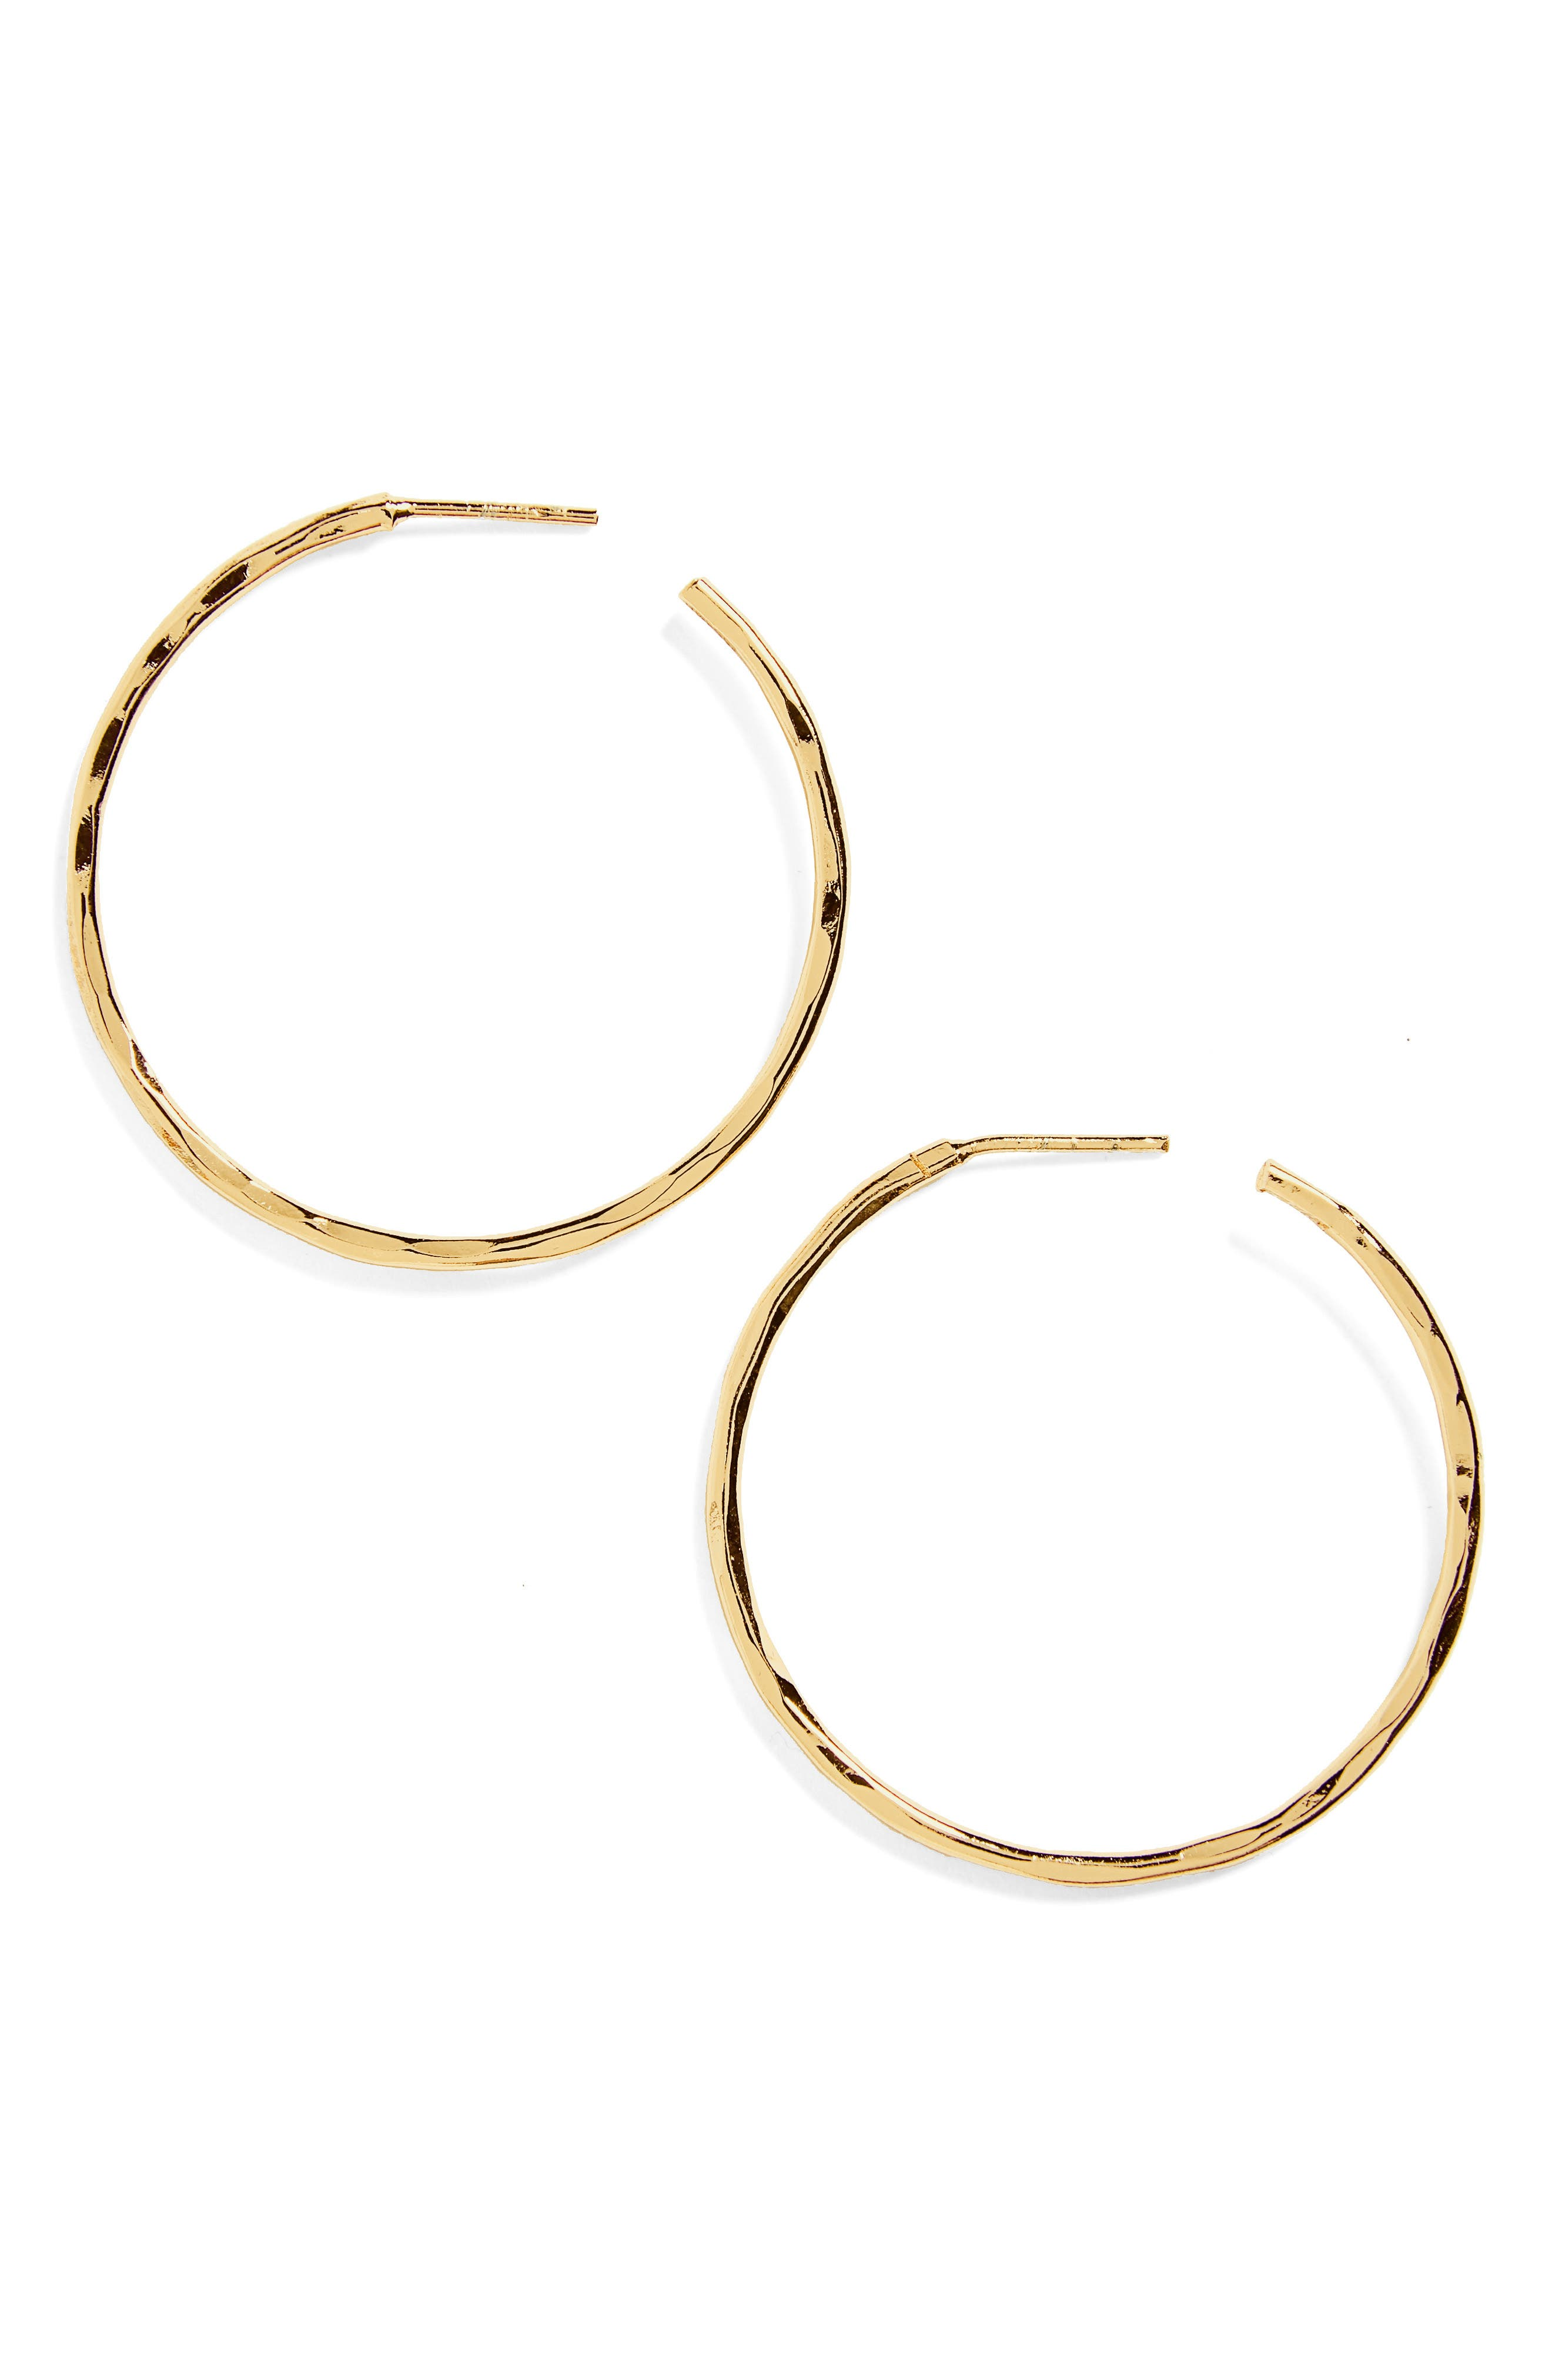 Medium Hammered Hoop Earrings,                             Alternate thumbnail 2, color,                             GOLD